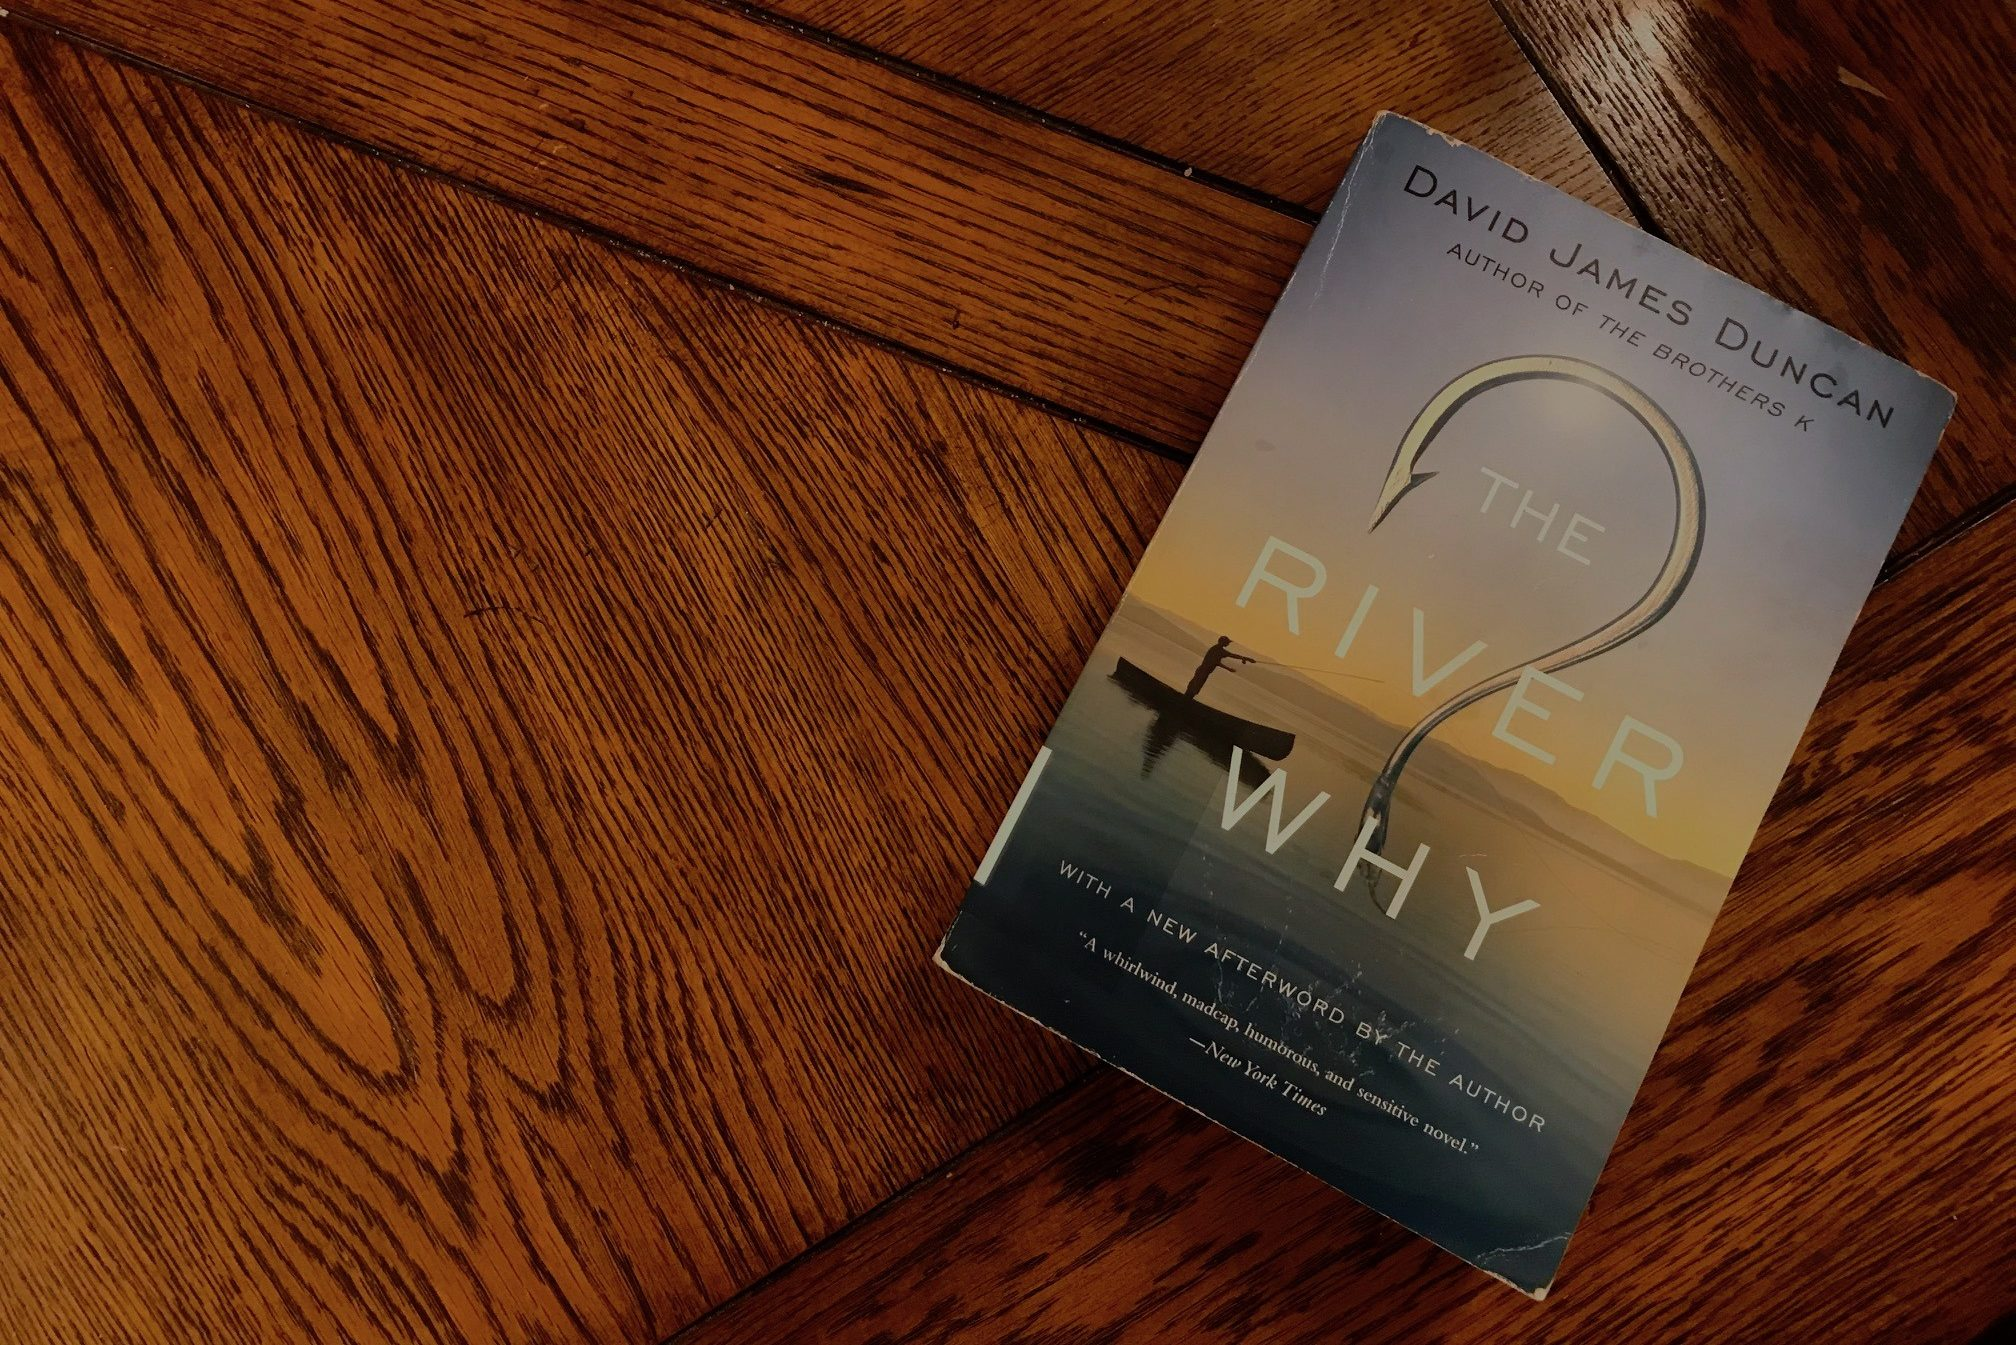 Book Recommendation: The River Why by David James Duncan